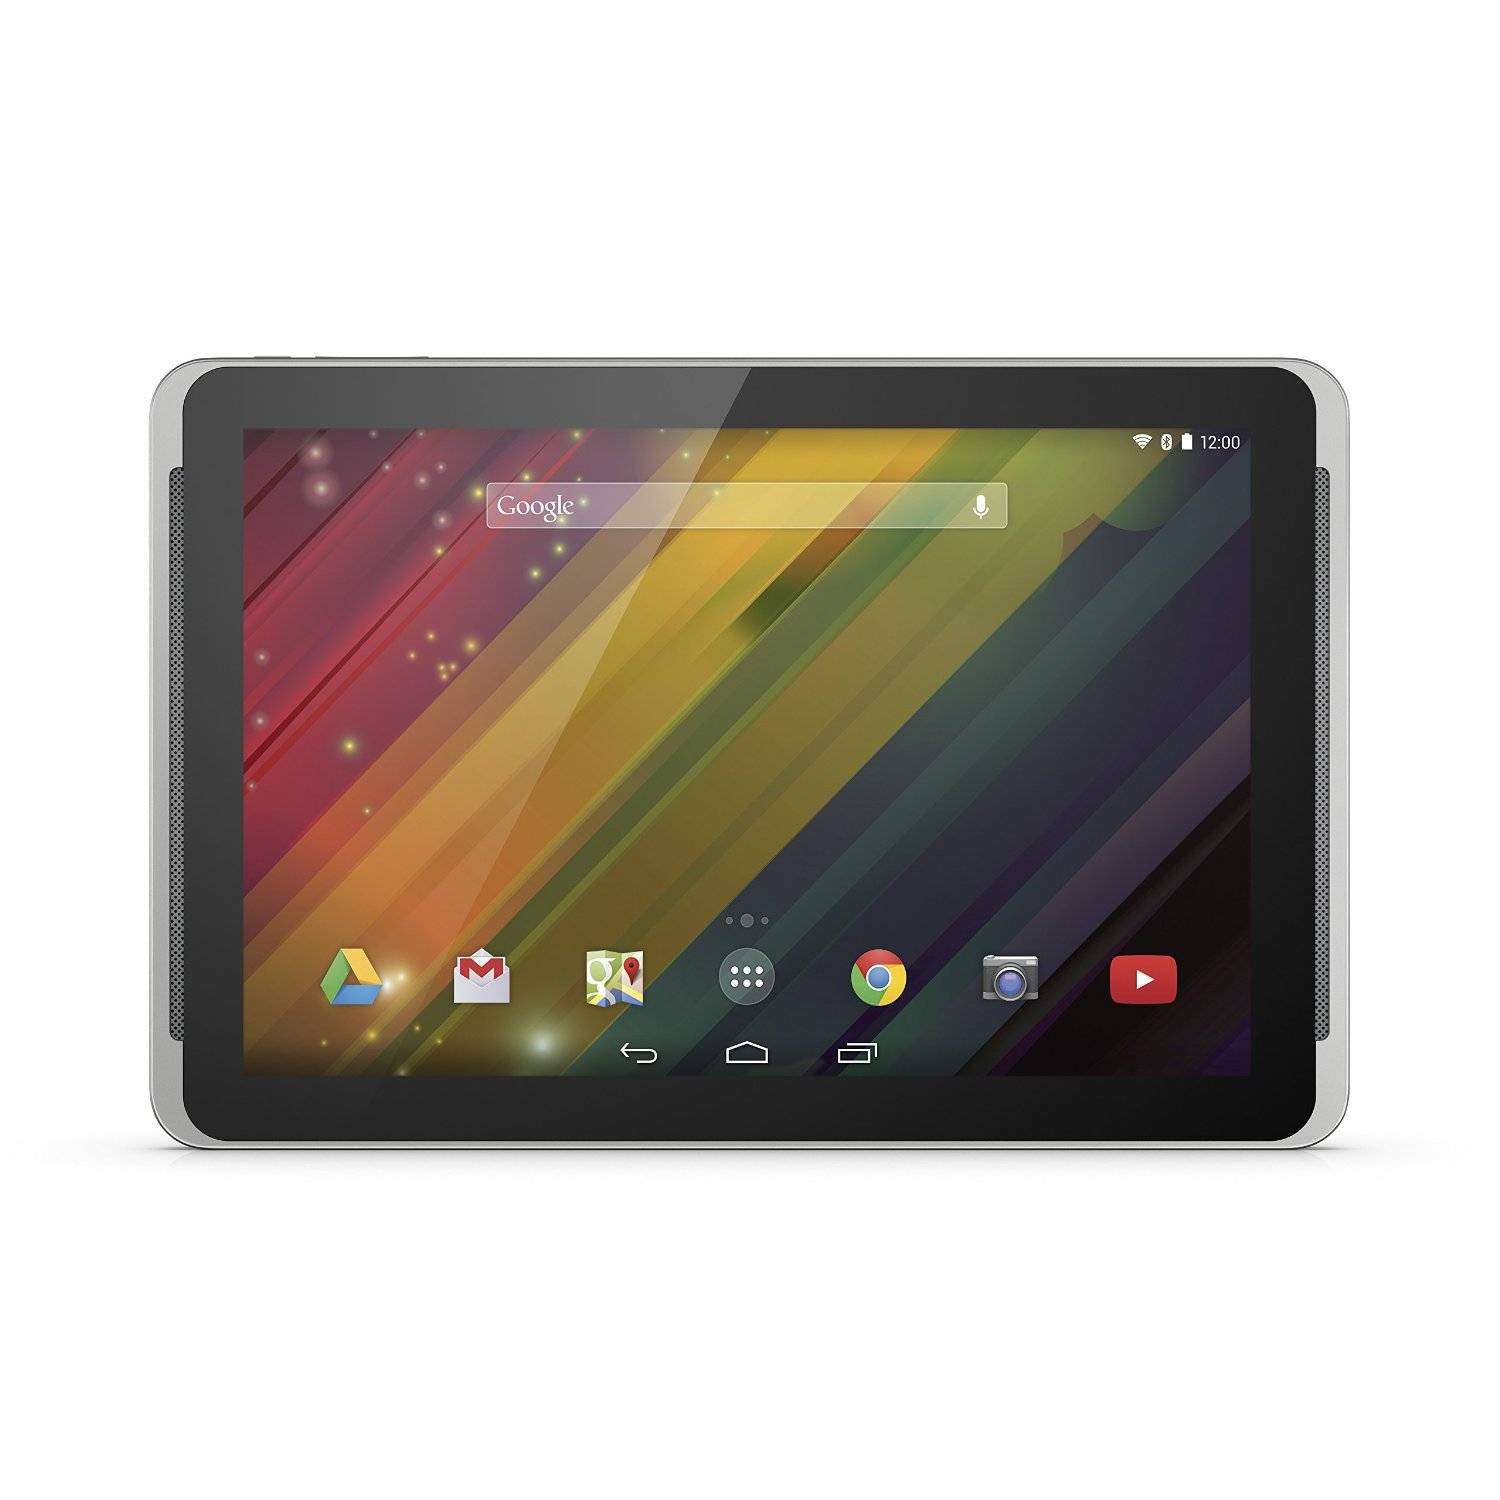 Stupendous Hp 10 Plus Tablet Shows Up At Amazon No Official Download Free Architecture Designs Rallybritishbridgeorg